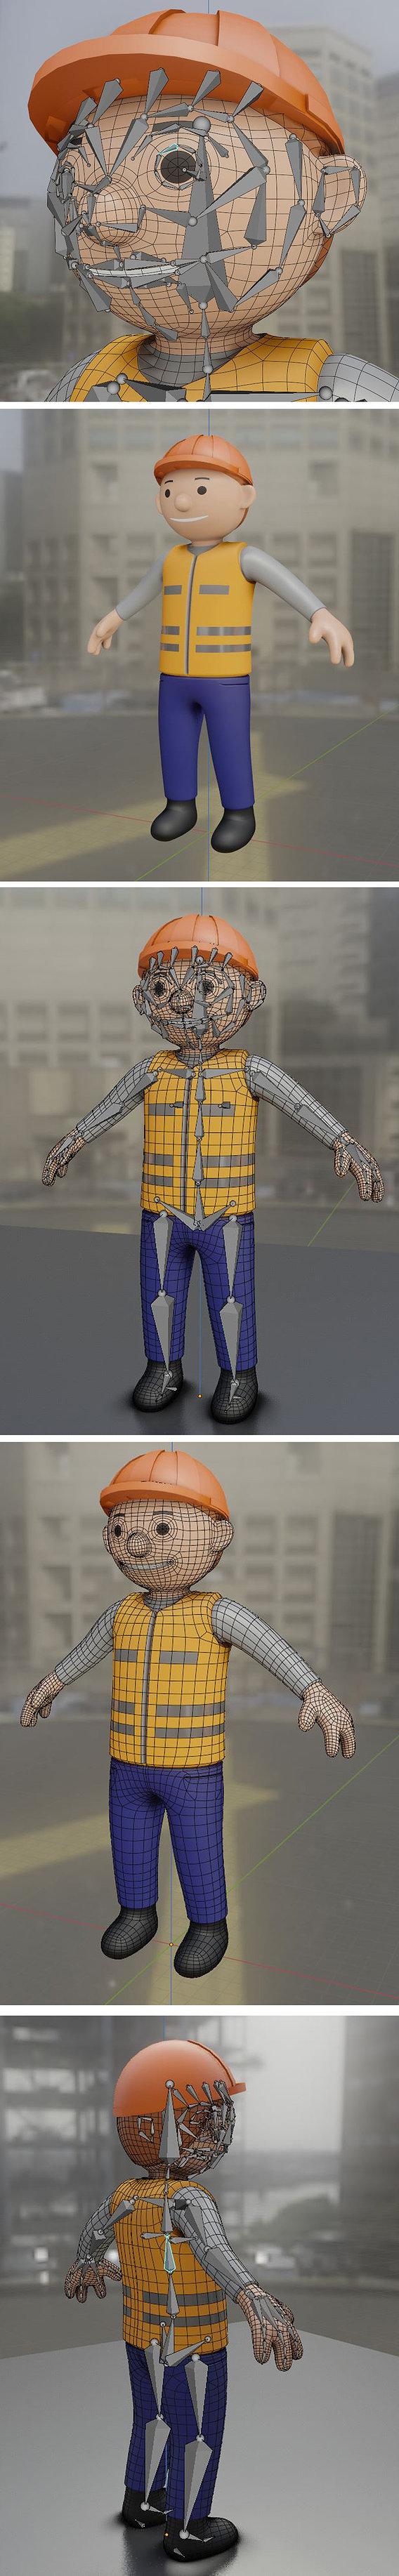 Cartoonish Construction Worker High-Poly Version - Blender-2.90.1